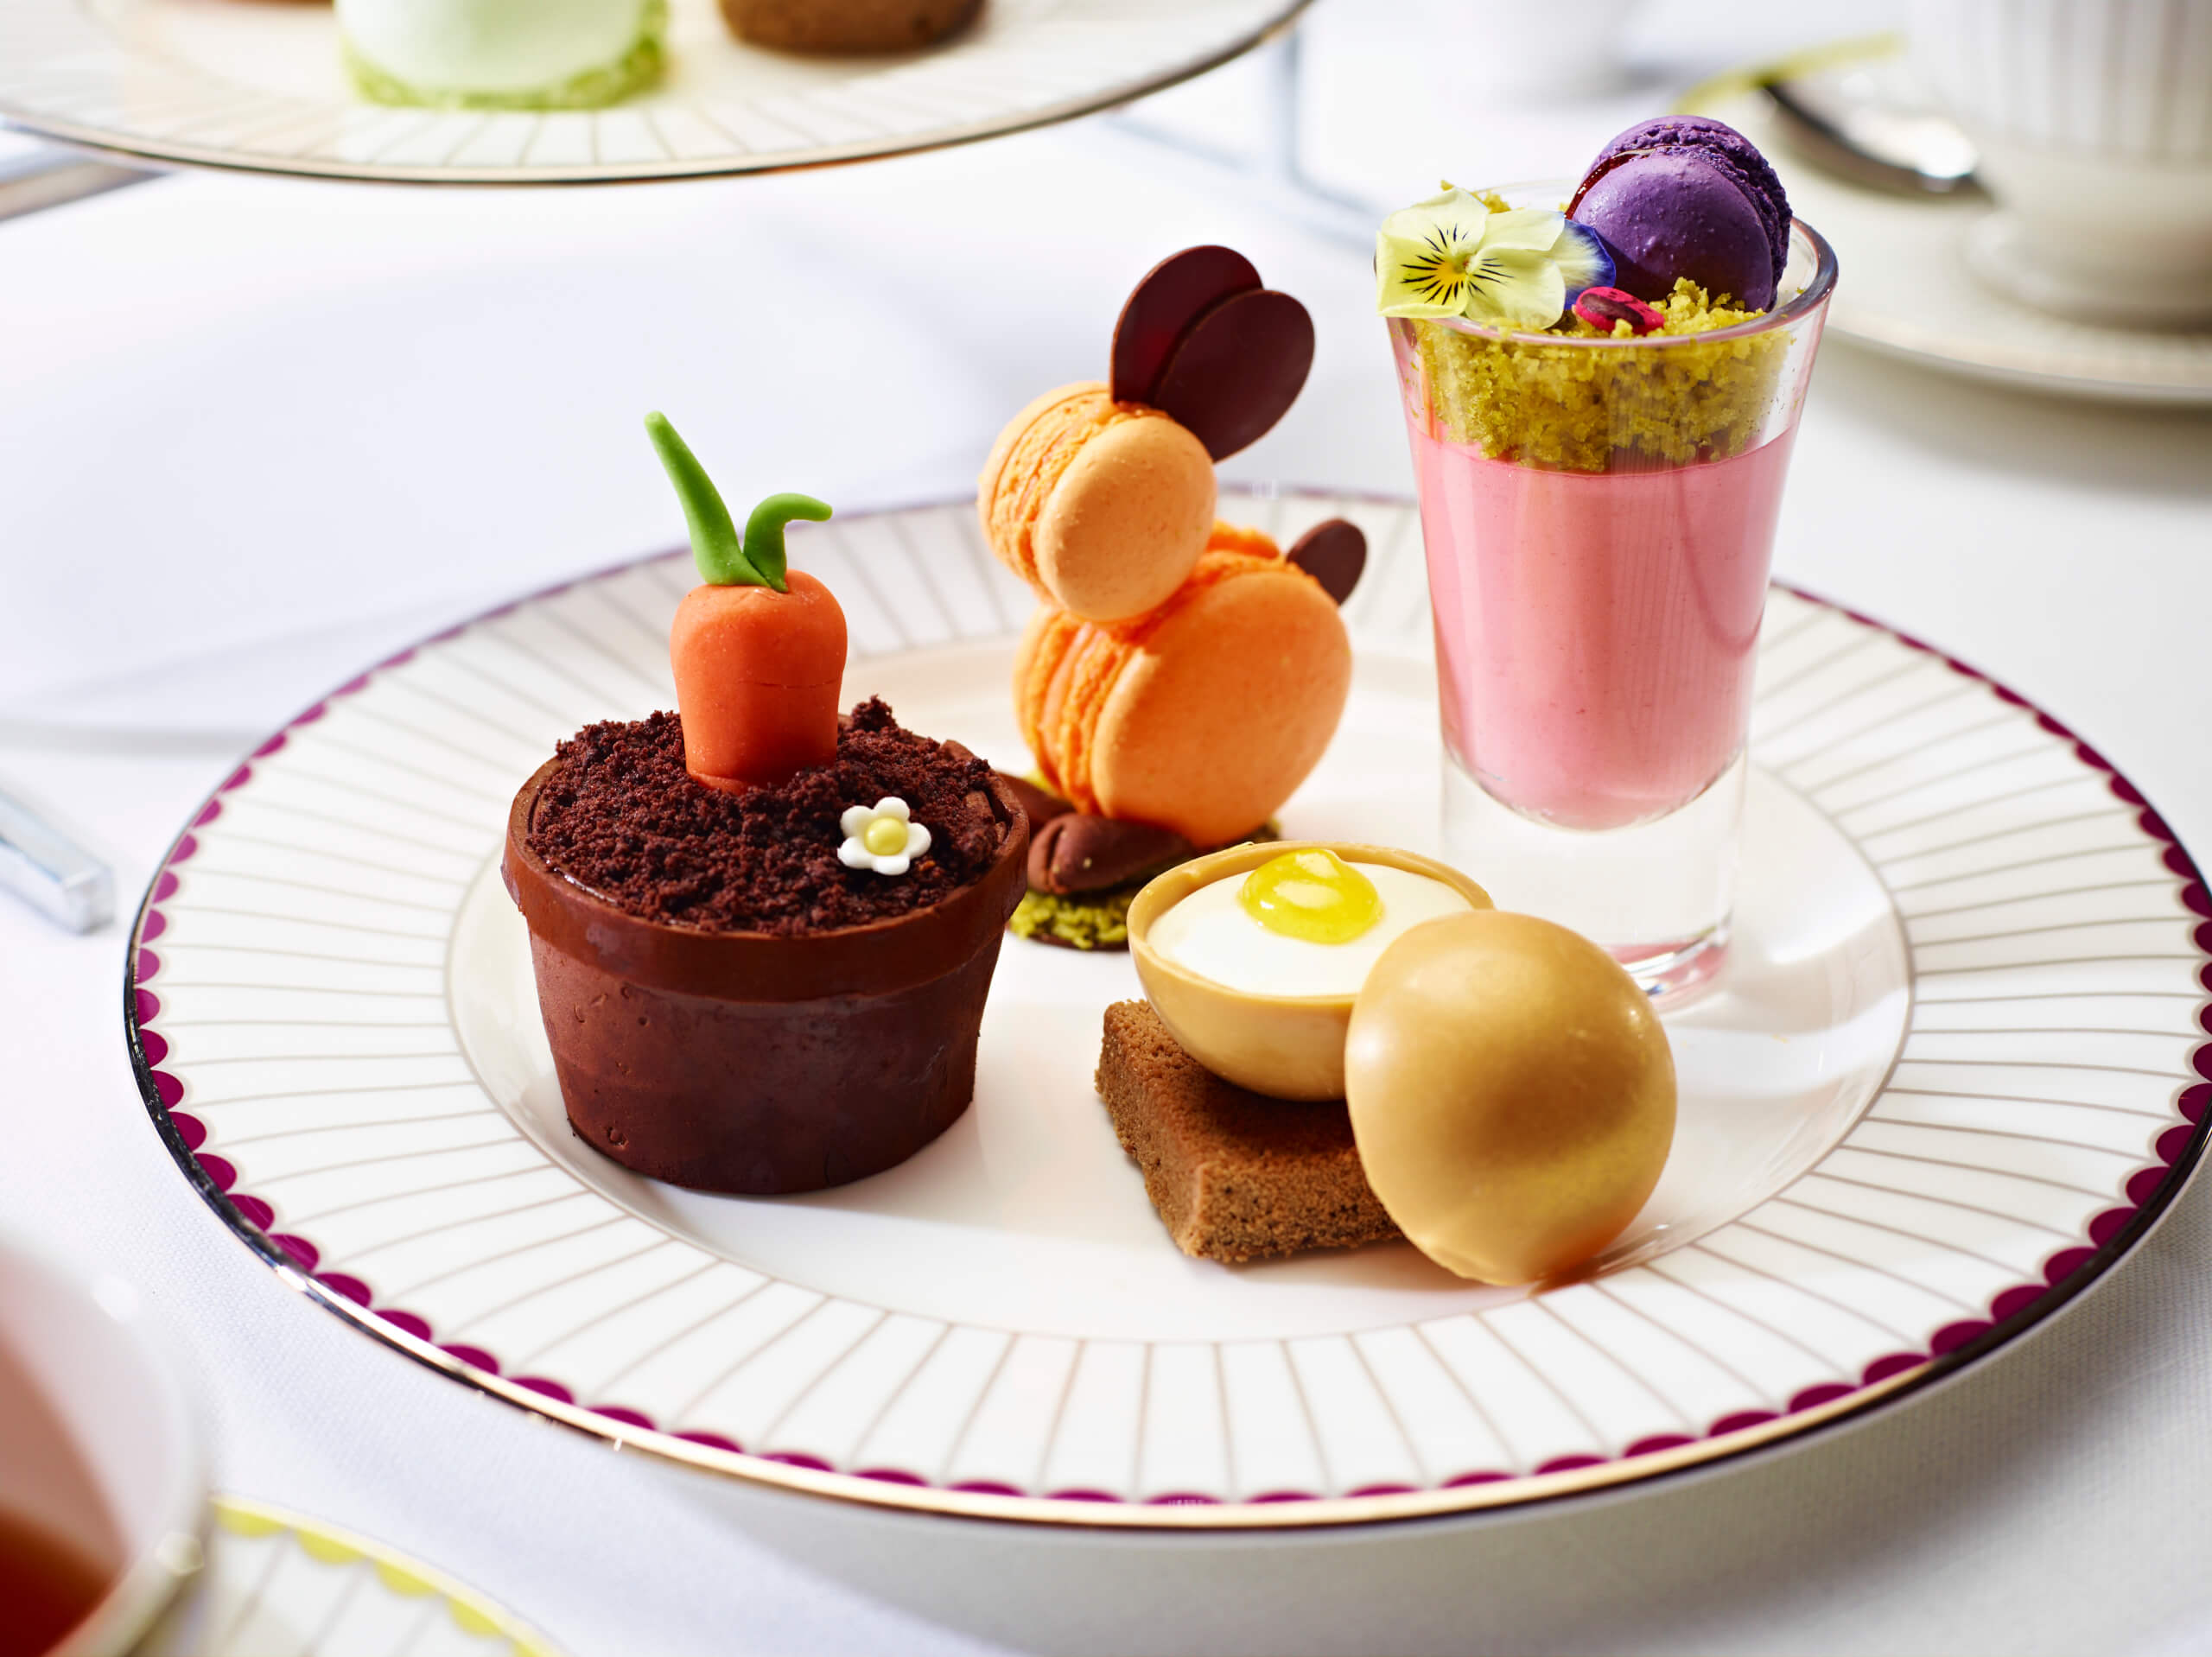 Corinthia, hotels, afternoon teas, afternoon tea in London, UK breaks, easter ideas, things to do, easter afternoon tea